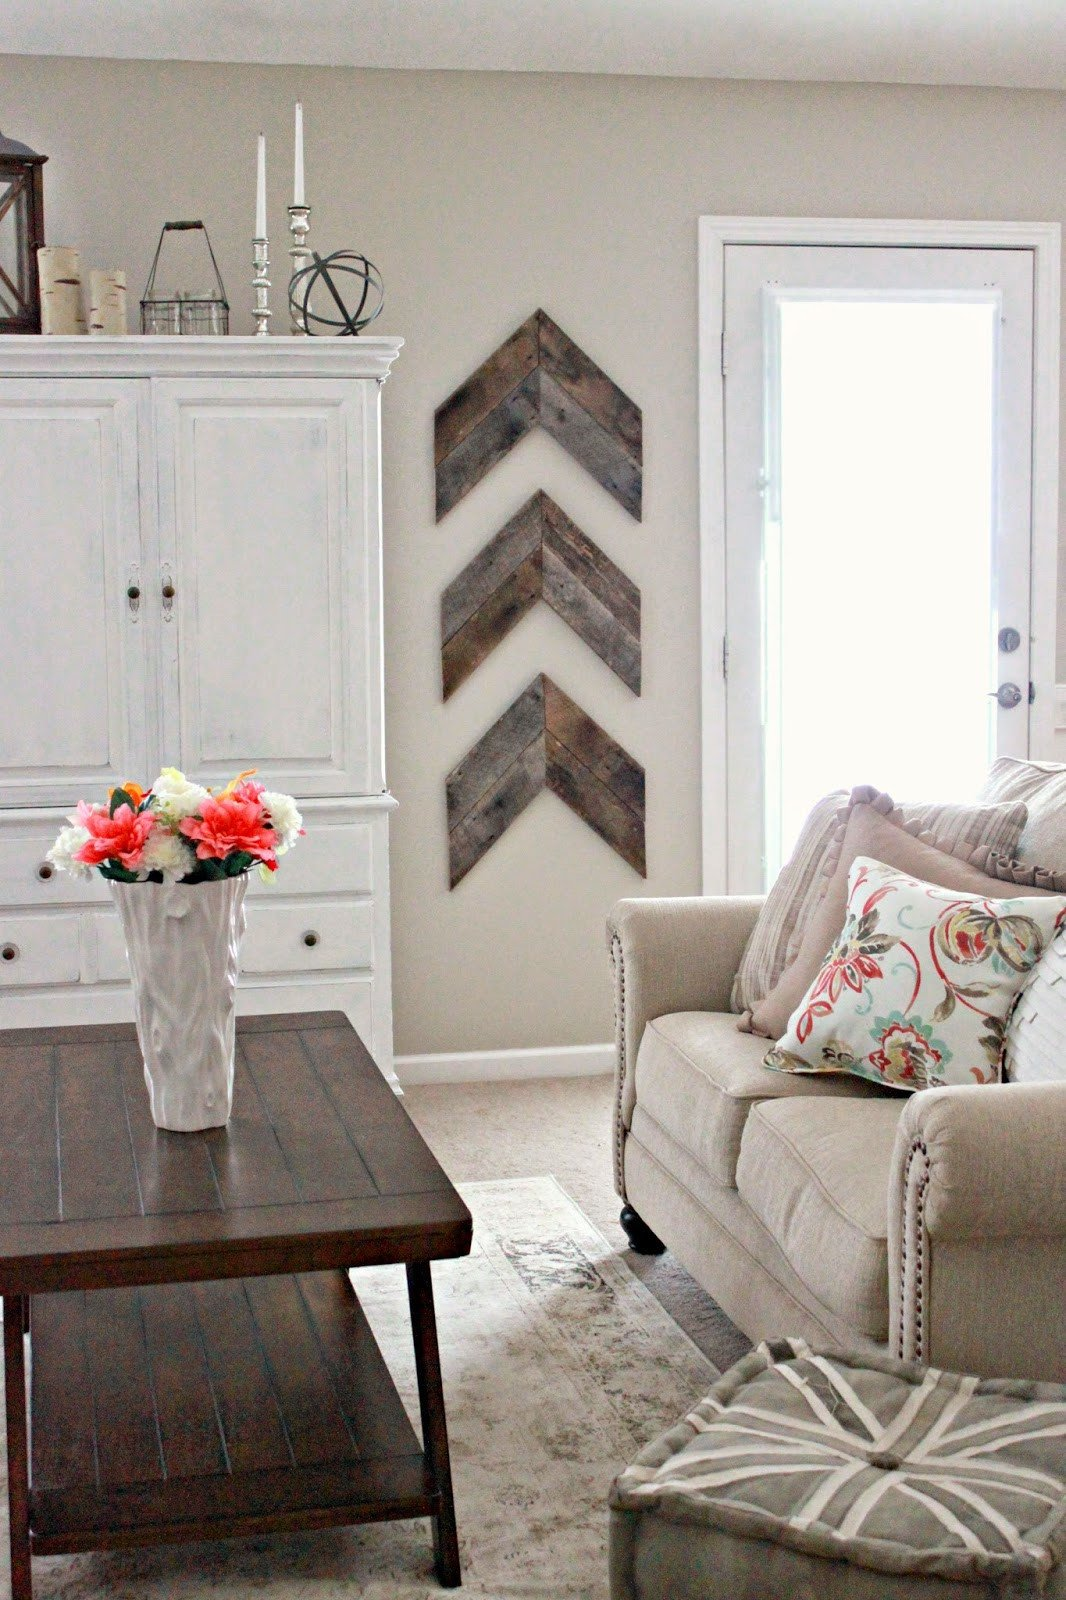 Living Room Wall Decor Ideas Fresh 27 Best Rustic Wall Decor Ideas and Designs for 2019